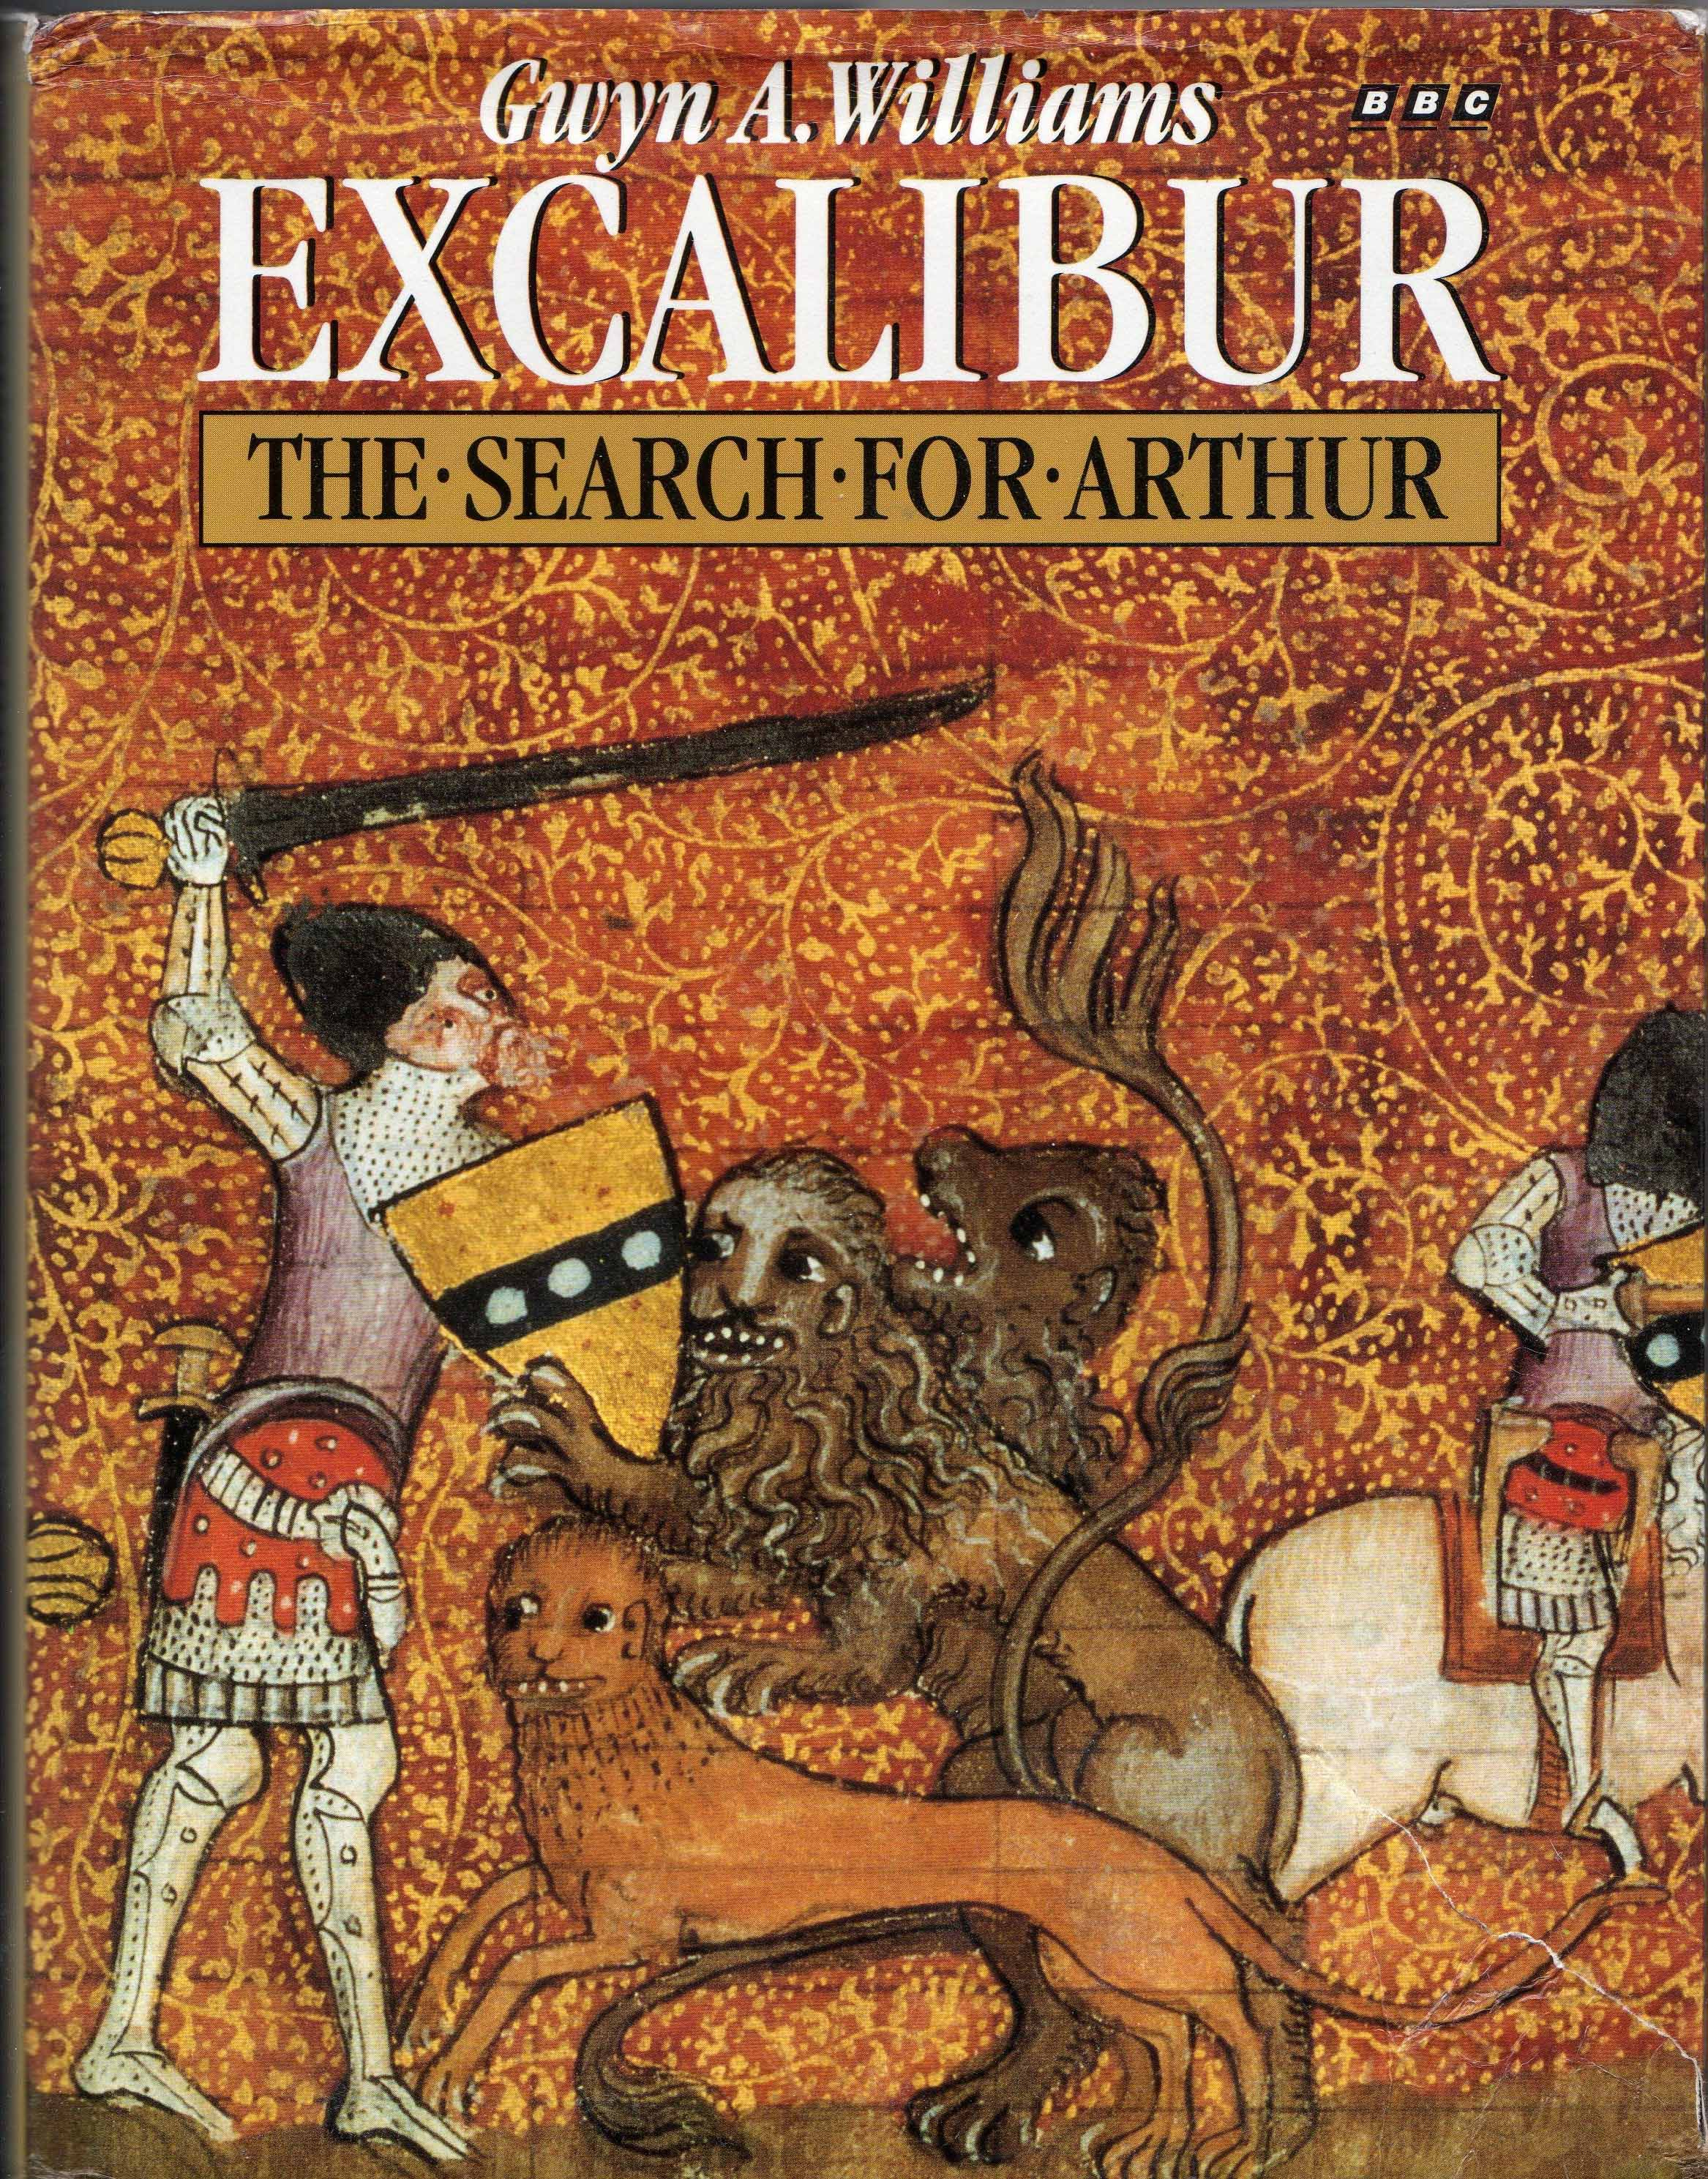 excalibur essay Excalibur definition: (in arthurian legend ) the magic sword of king arthur | meaning, pronunciation, translations and examples.